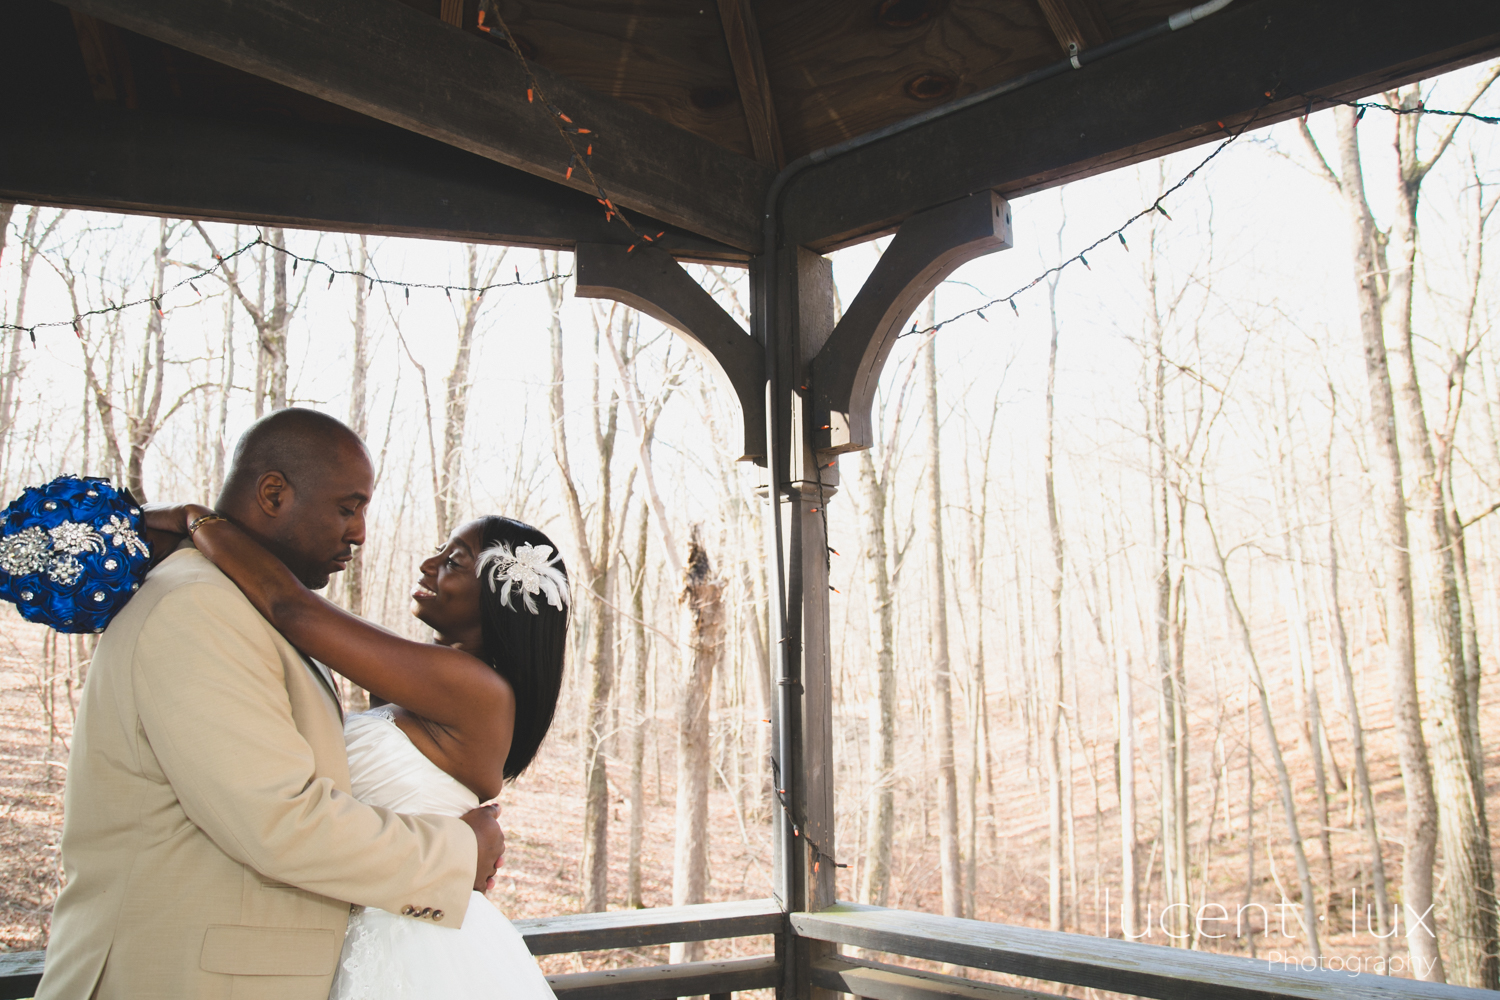 Harford_County_Courthouse_Bel_Air_Maryland_Wedding_Photographer_Maryland_Wedding_Photography-123.jpg